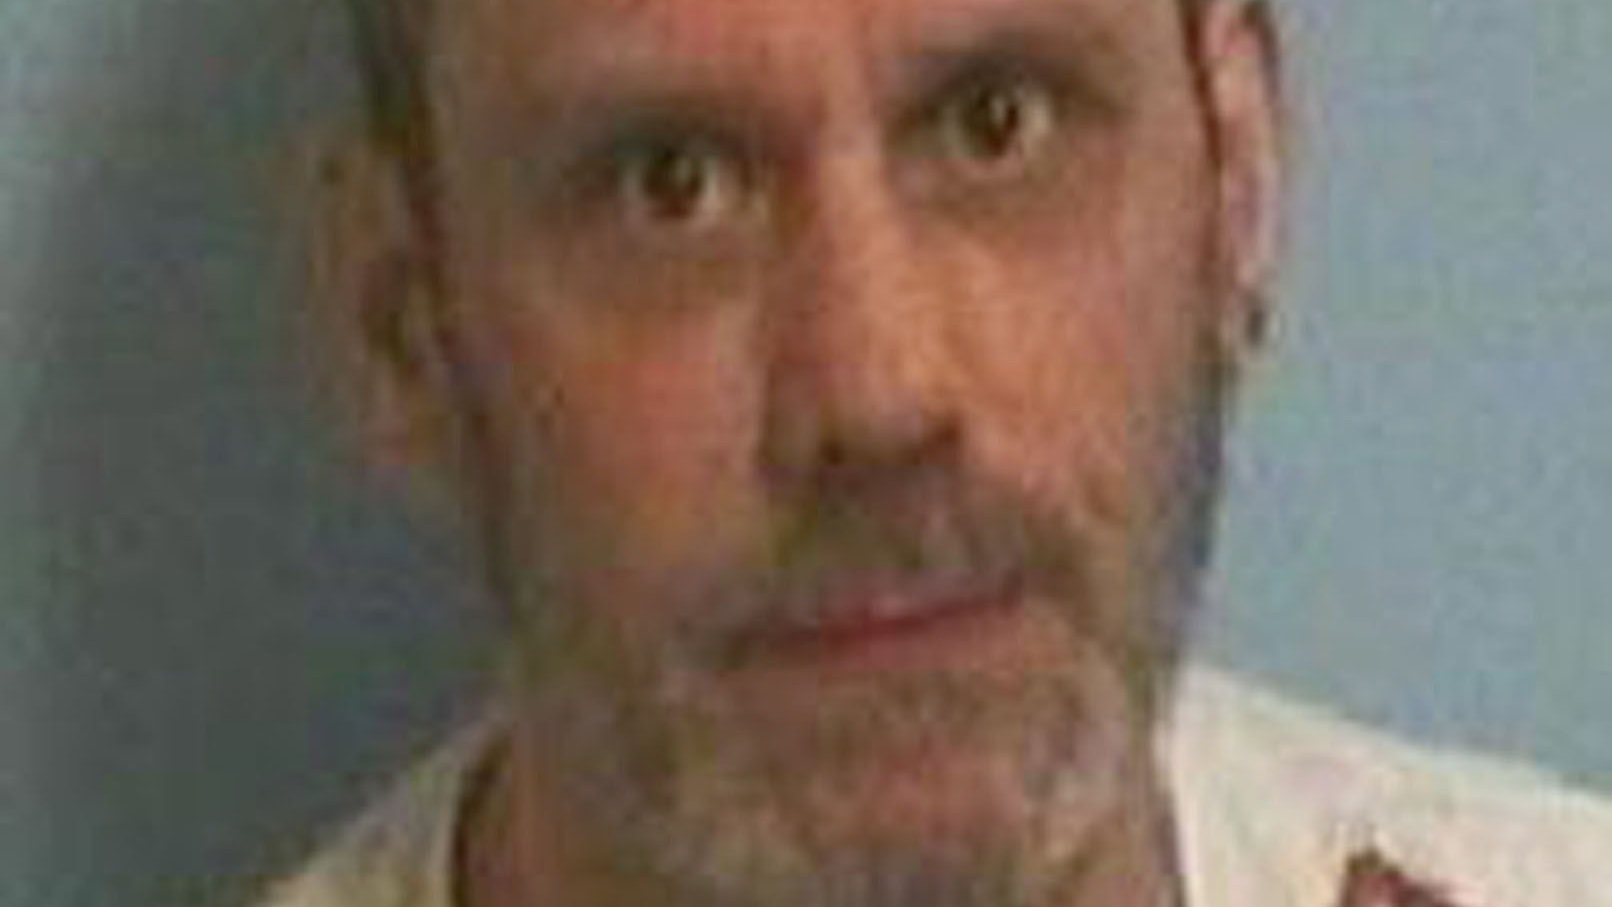 Convicted London killer is on the run after being released from prison